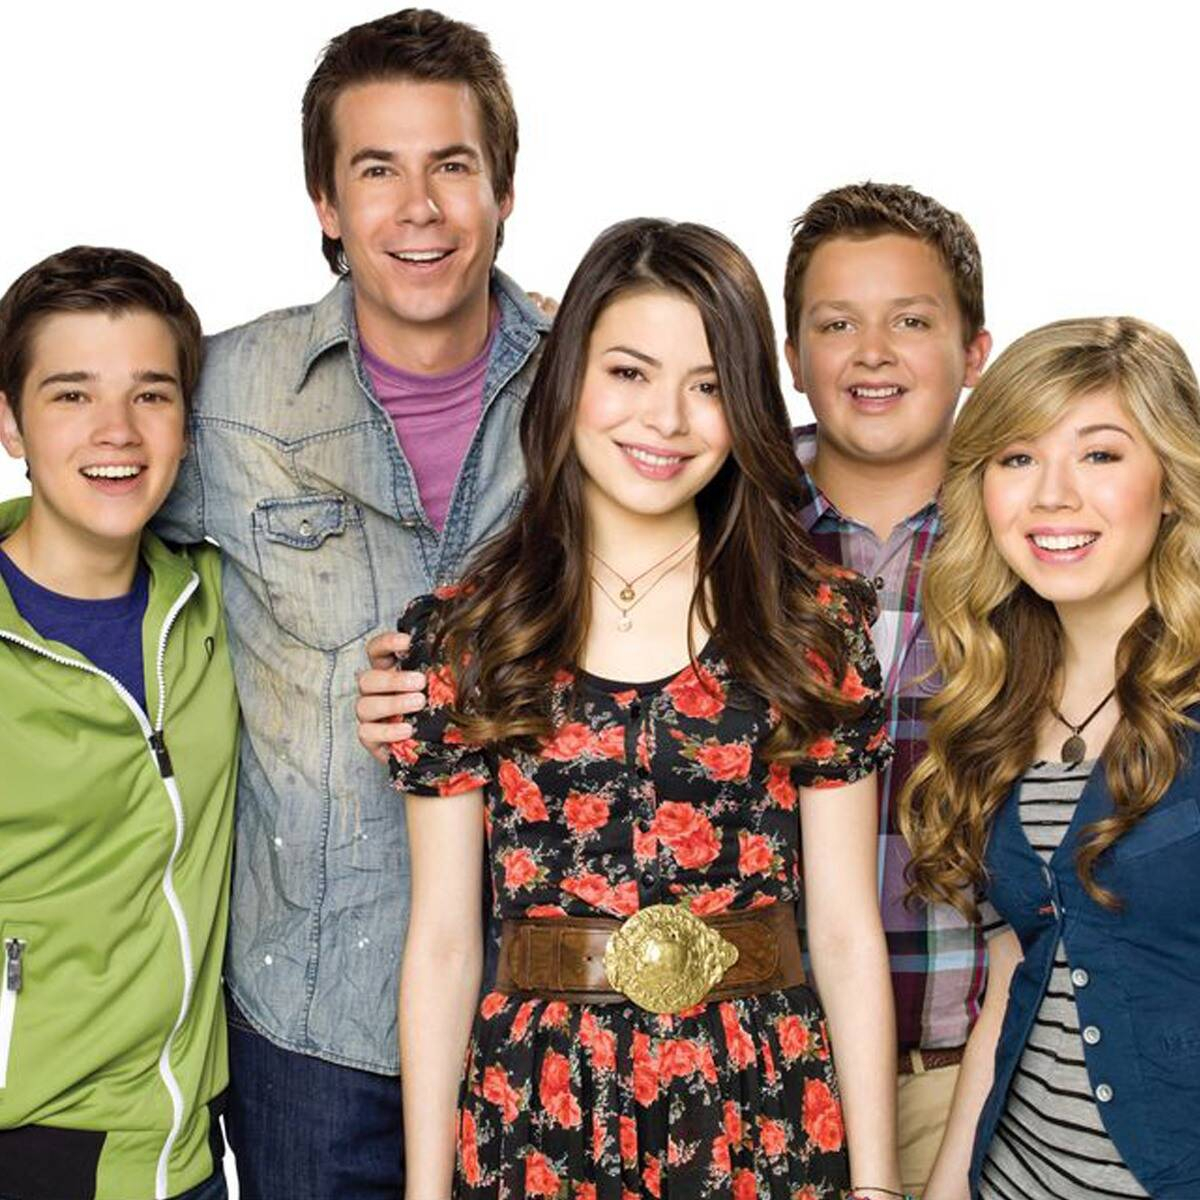 rs 1200x1200 1200 icarly cast